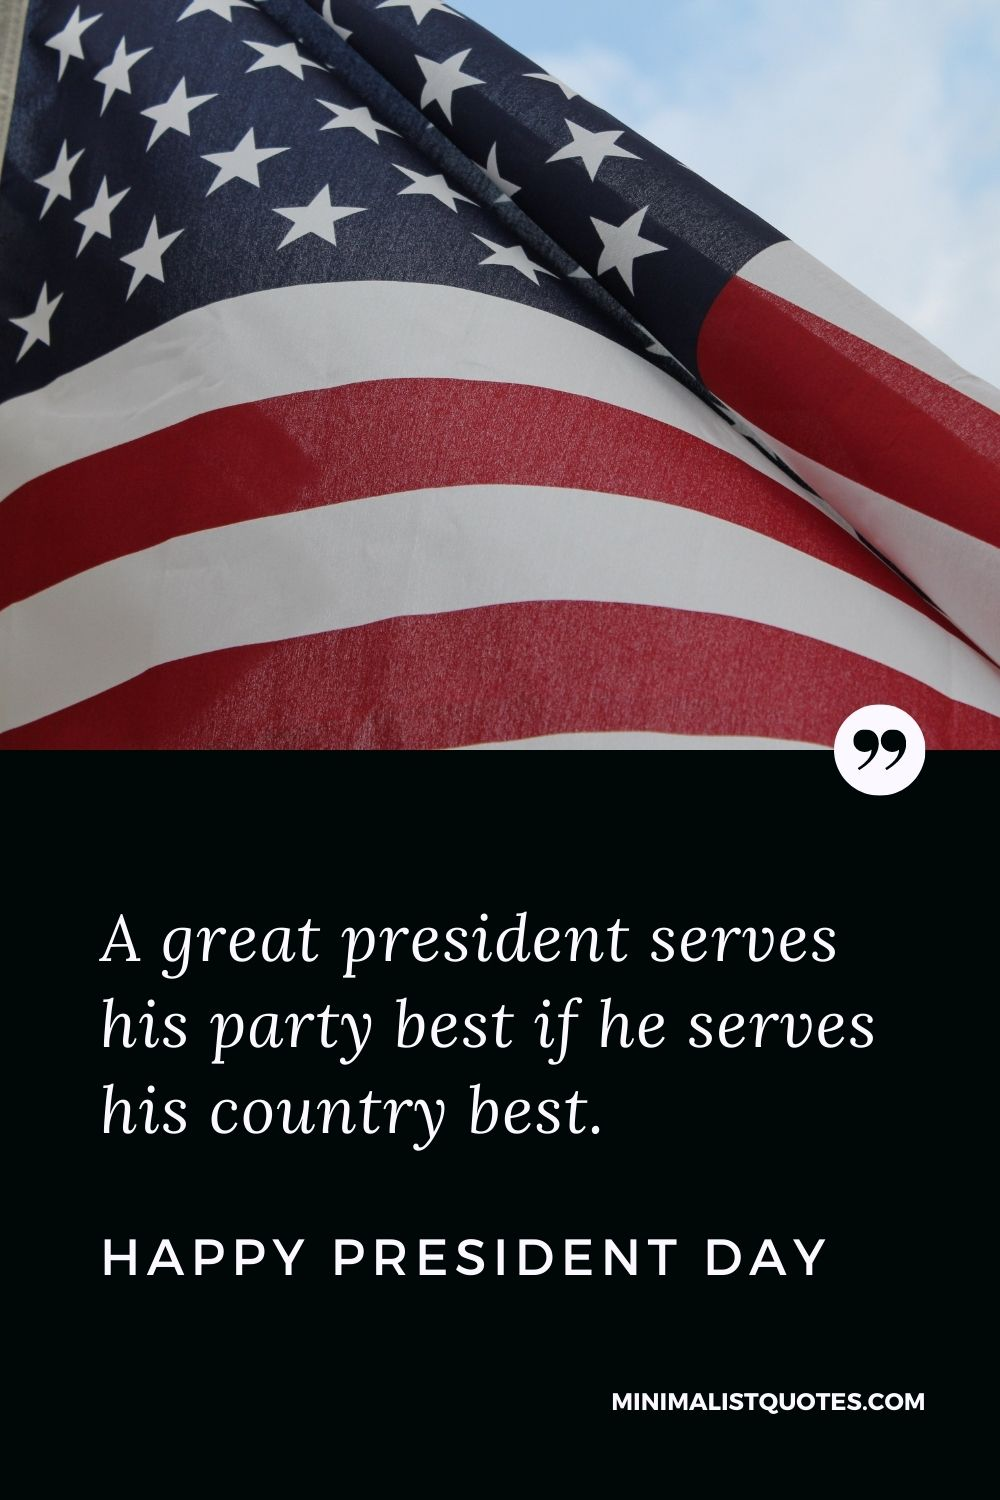 President Day Quote, Wish & Message With Image: A great president serves his party best if he serves his country best. Happy President Day!